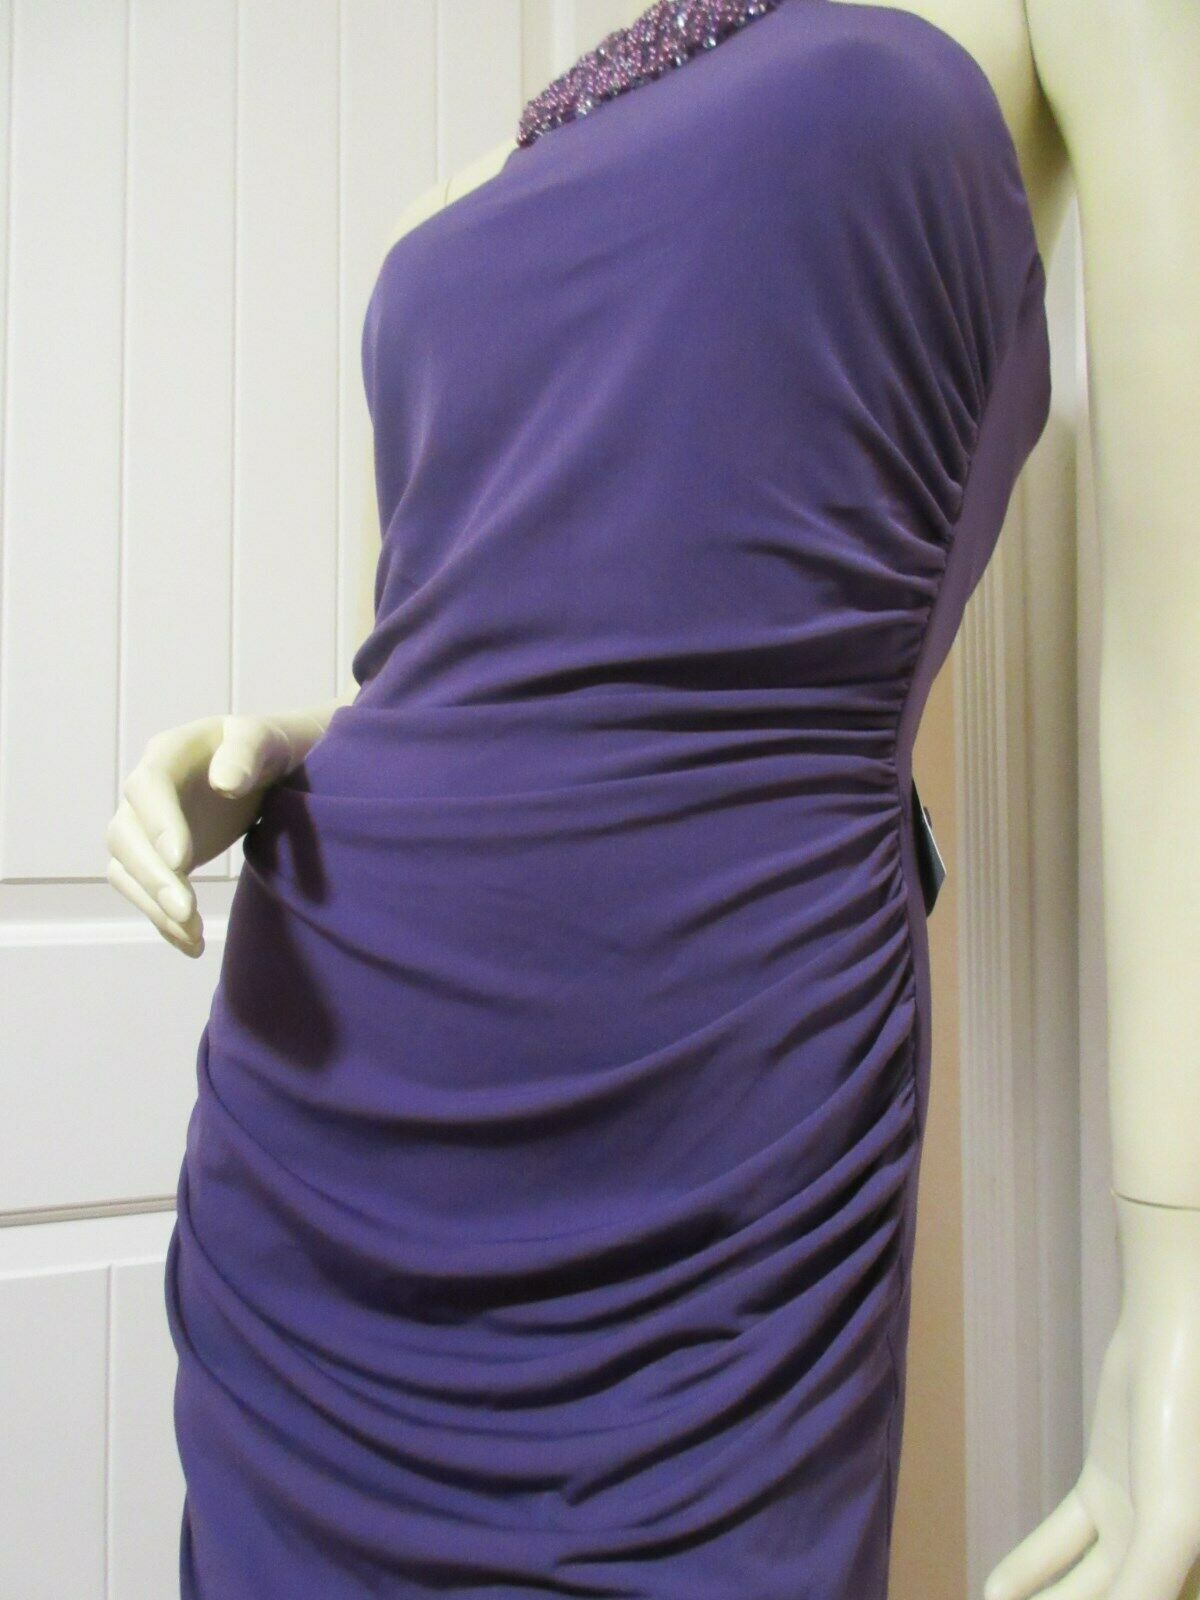 JS BOUTIQUE NORDSTROM NWT Womens Sleeveless Sheath Bodycon Dress Dress Dress 8 Beads Purple bc183c